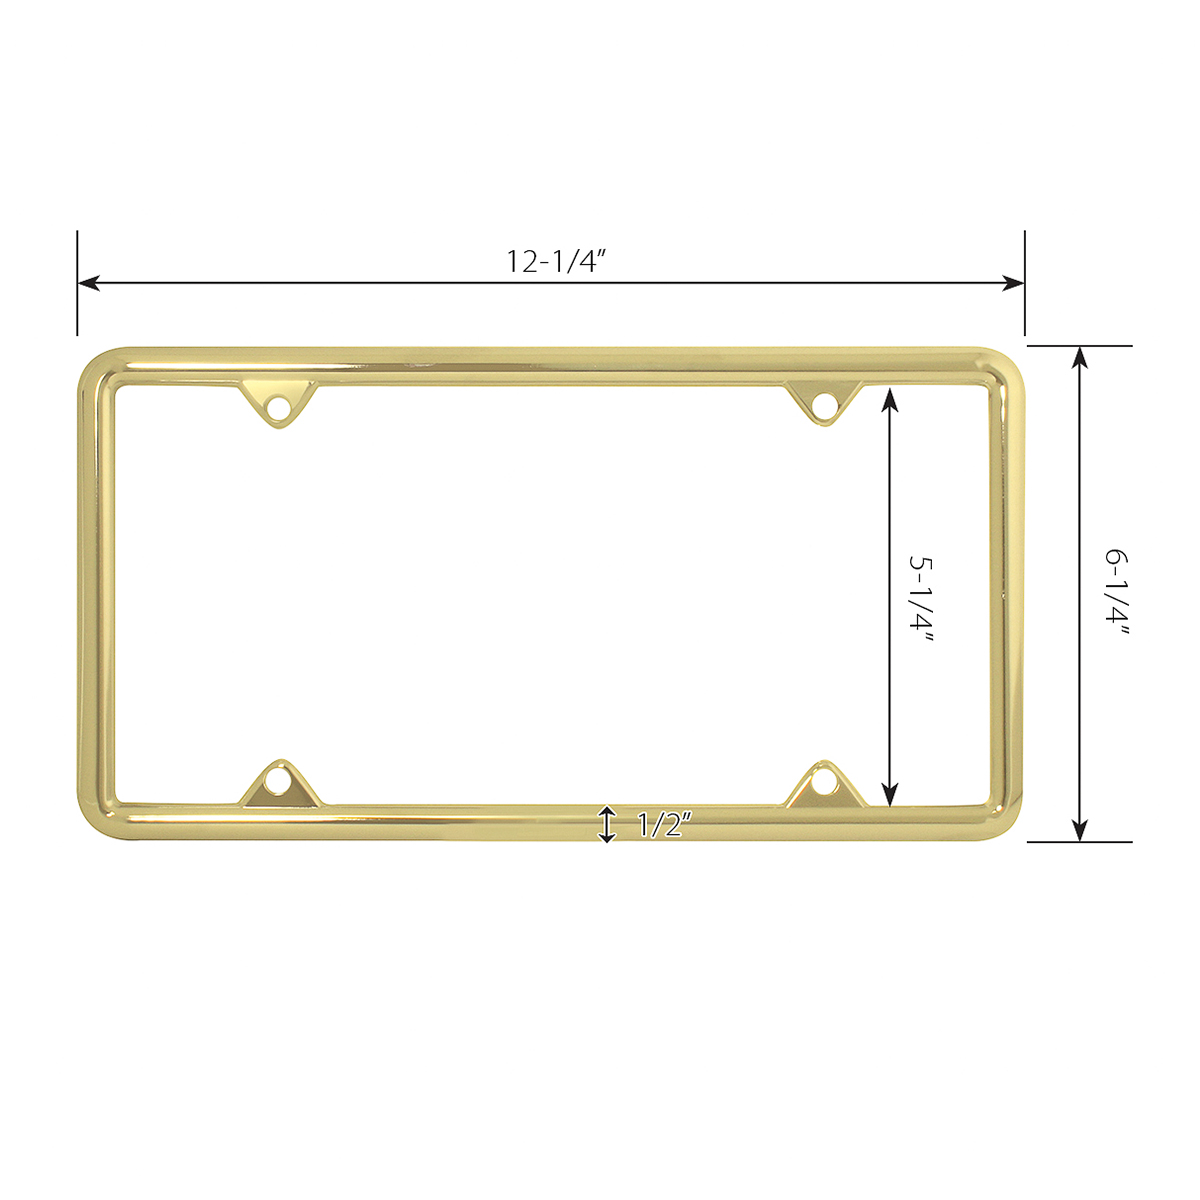 60062 Economic Brass-Plated Zinc Classic 4-Hole License Plate Frames - Measurements